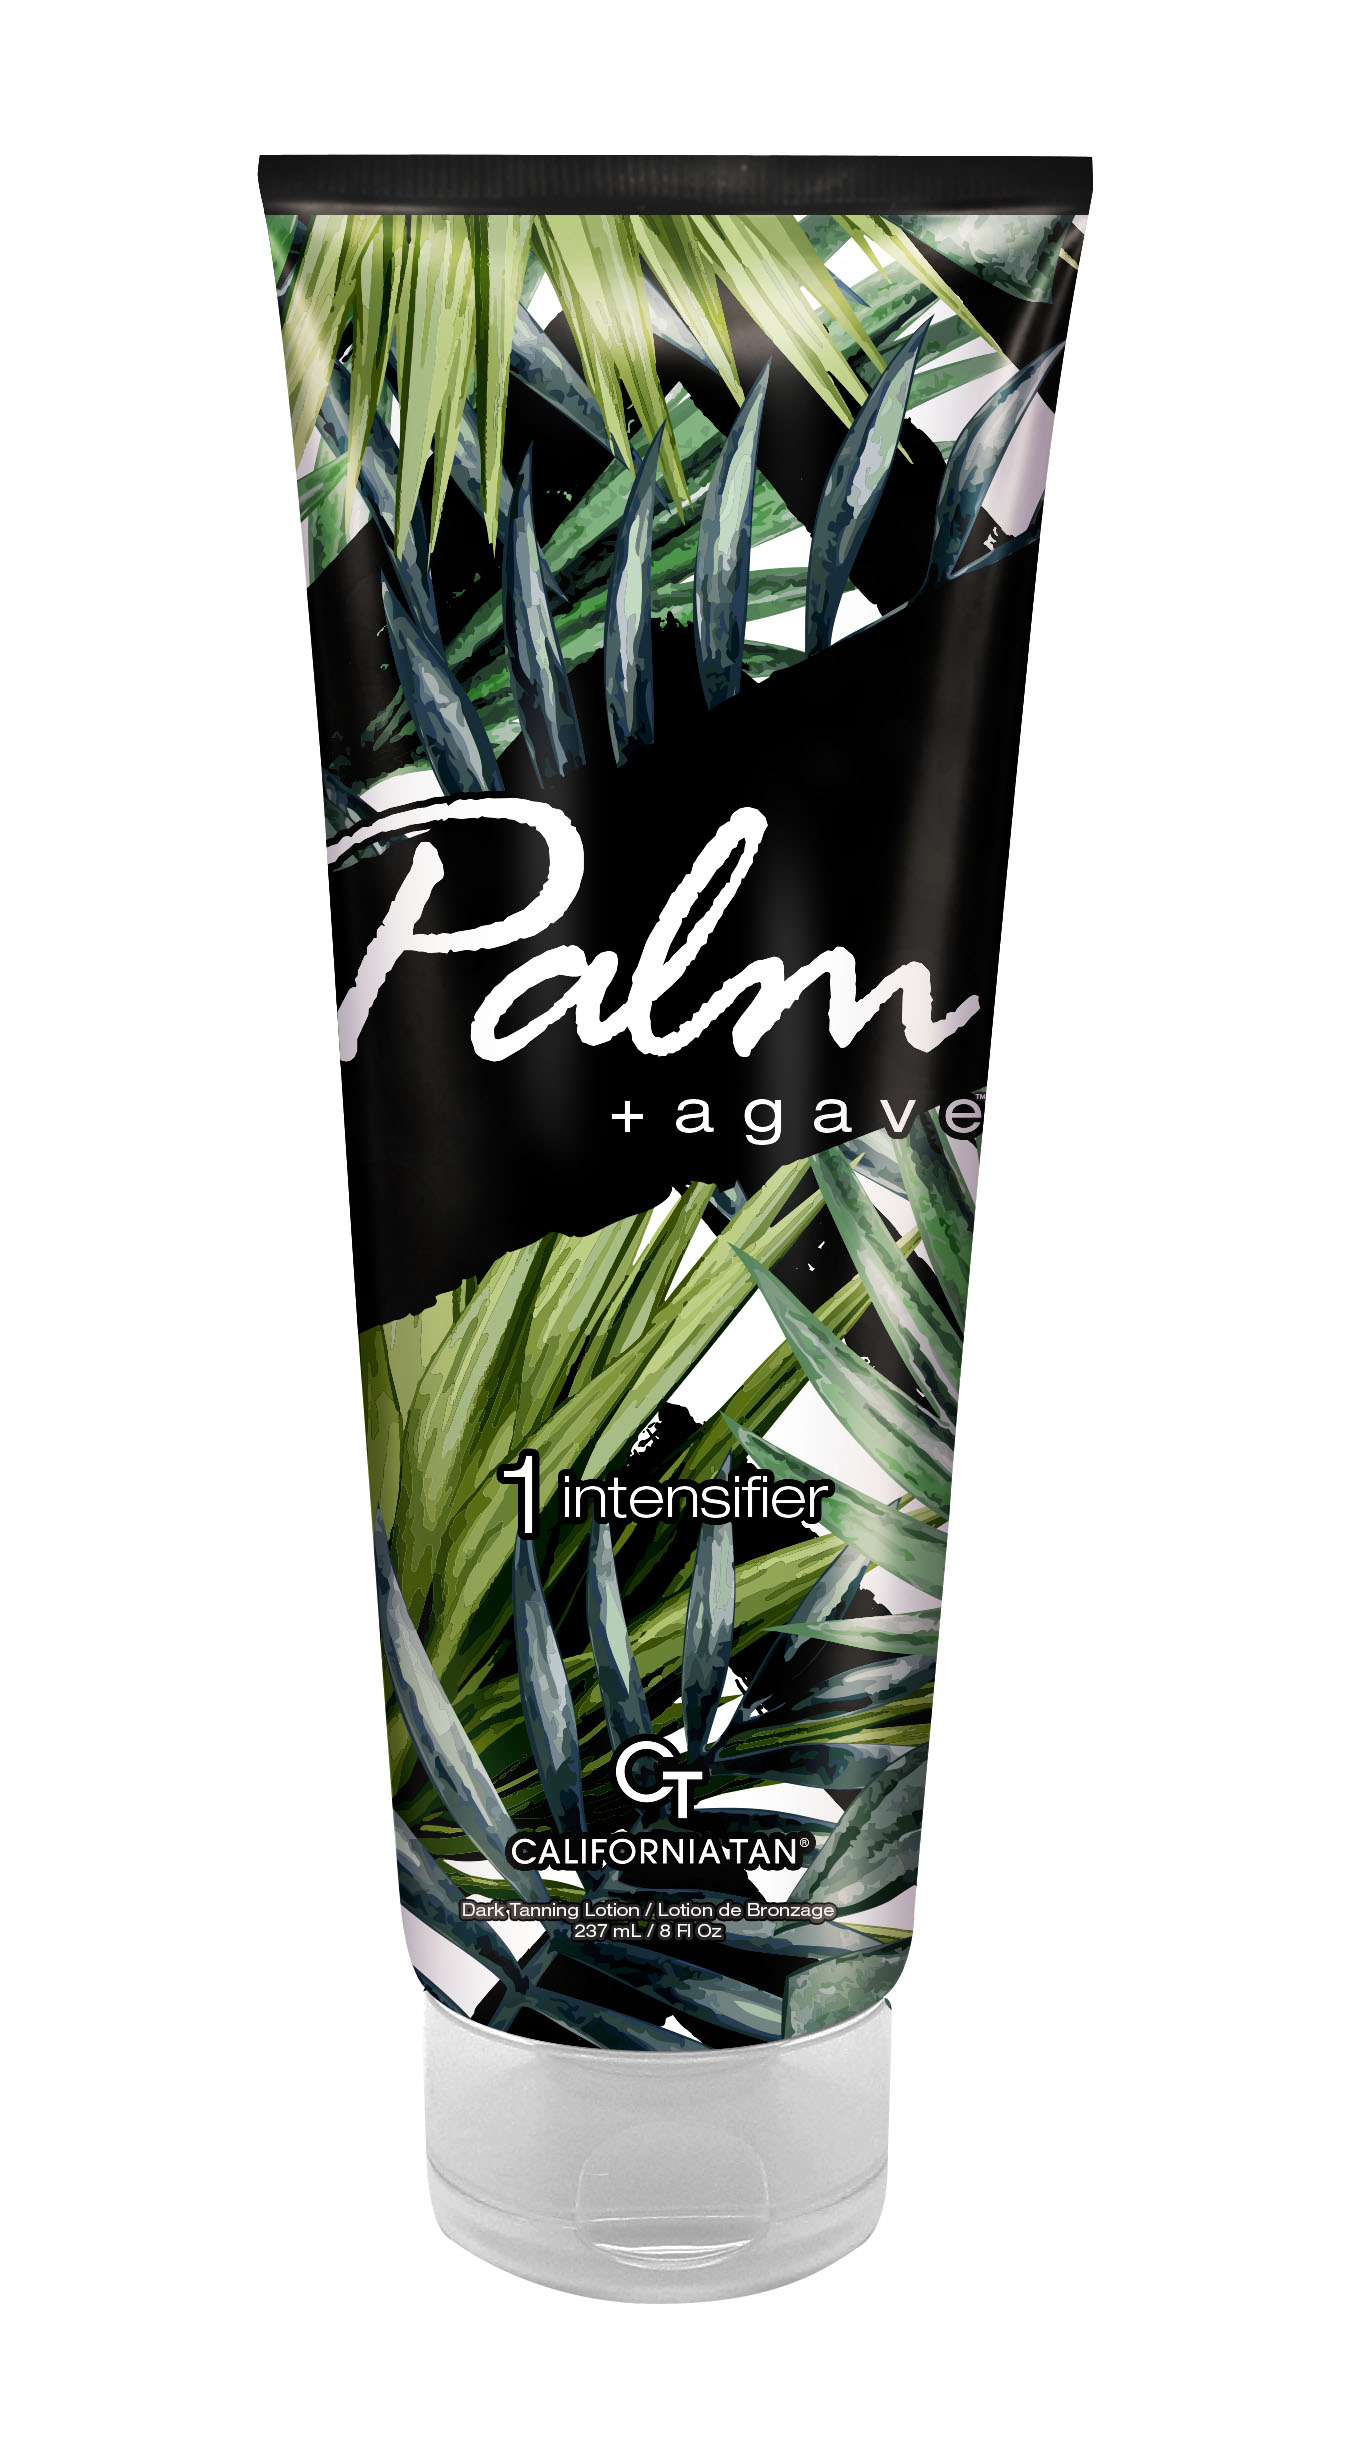 California Tan - Palm + Agave Intensifier Step1 (237ml)